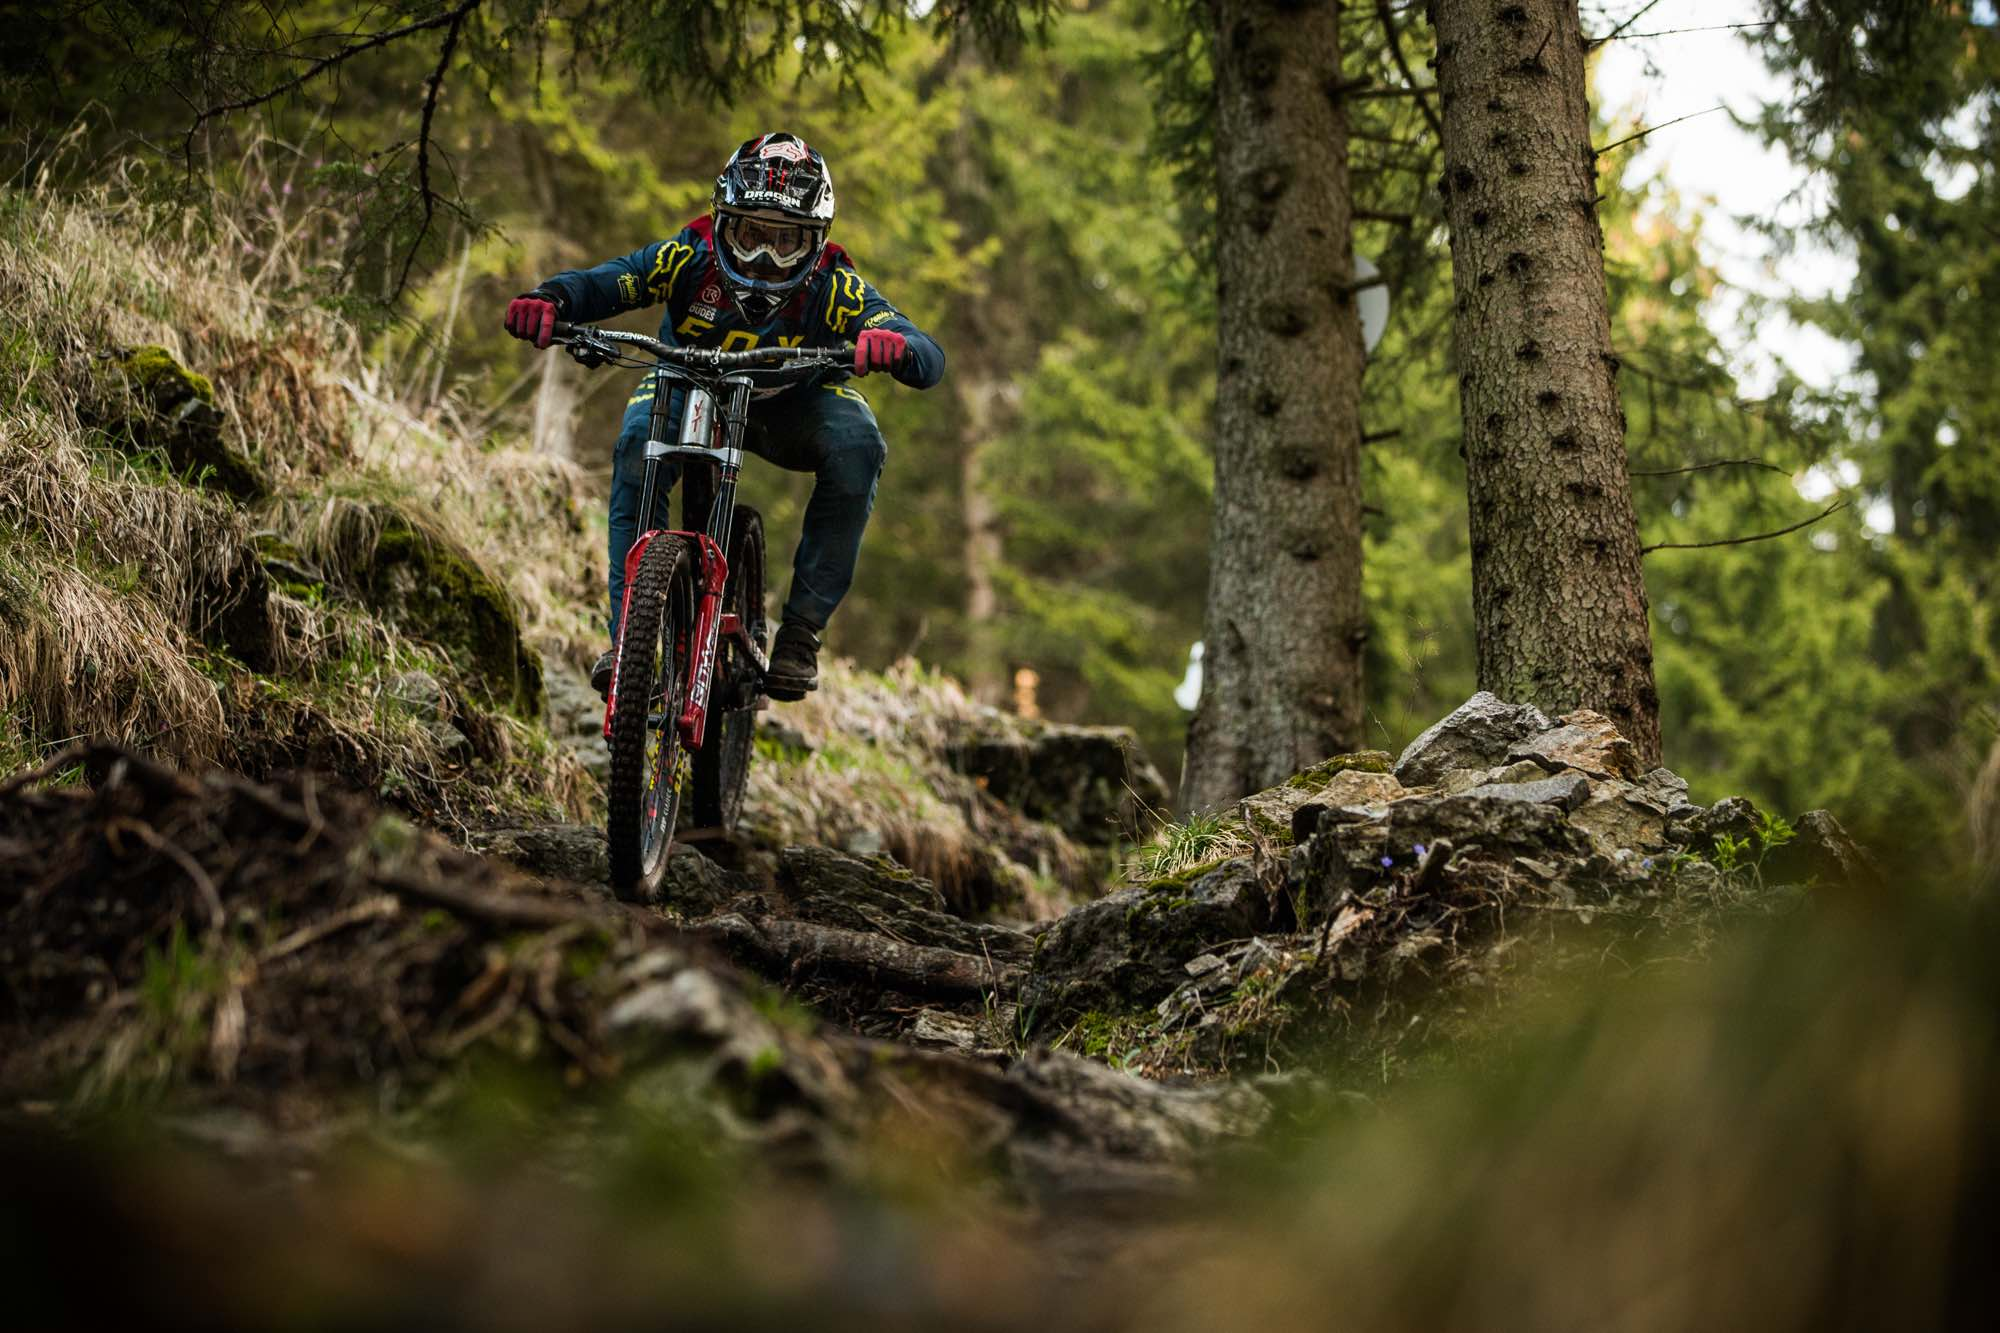 Interview with Johann Potgieter about the upcoming Downhill MTB world cup season